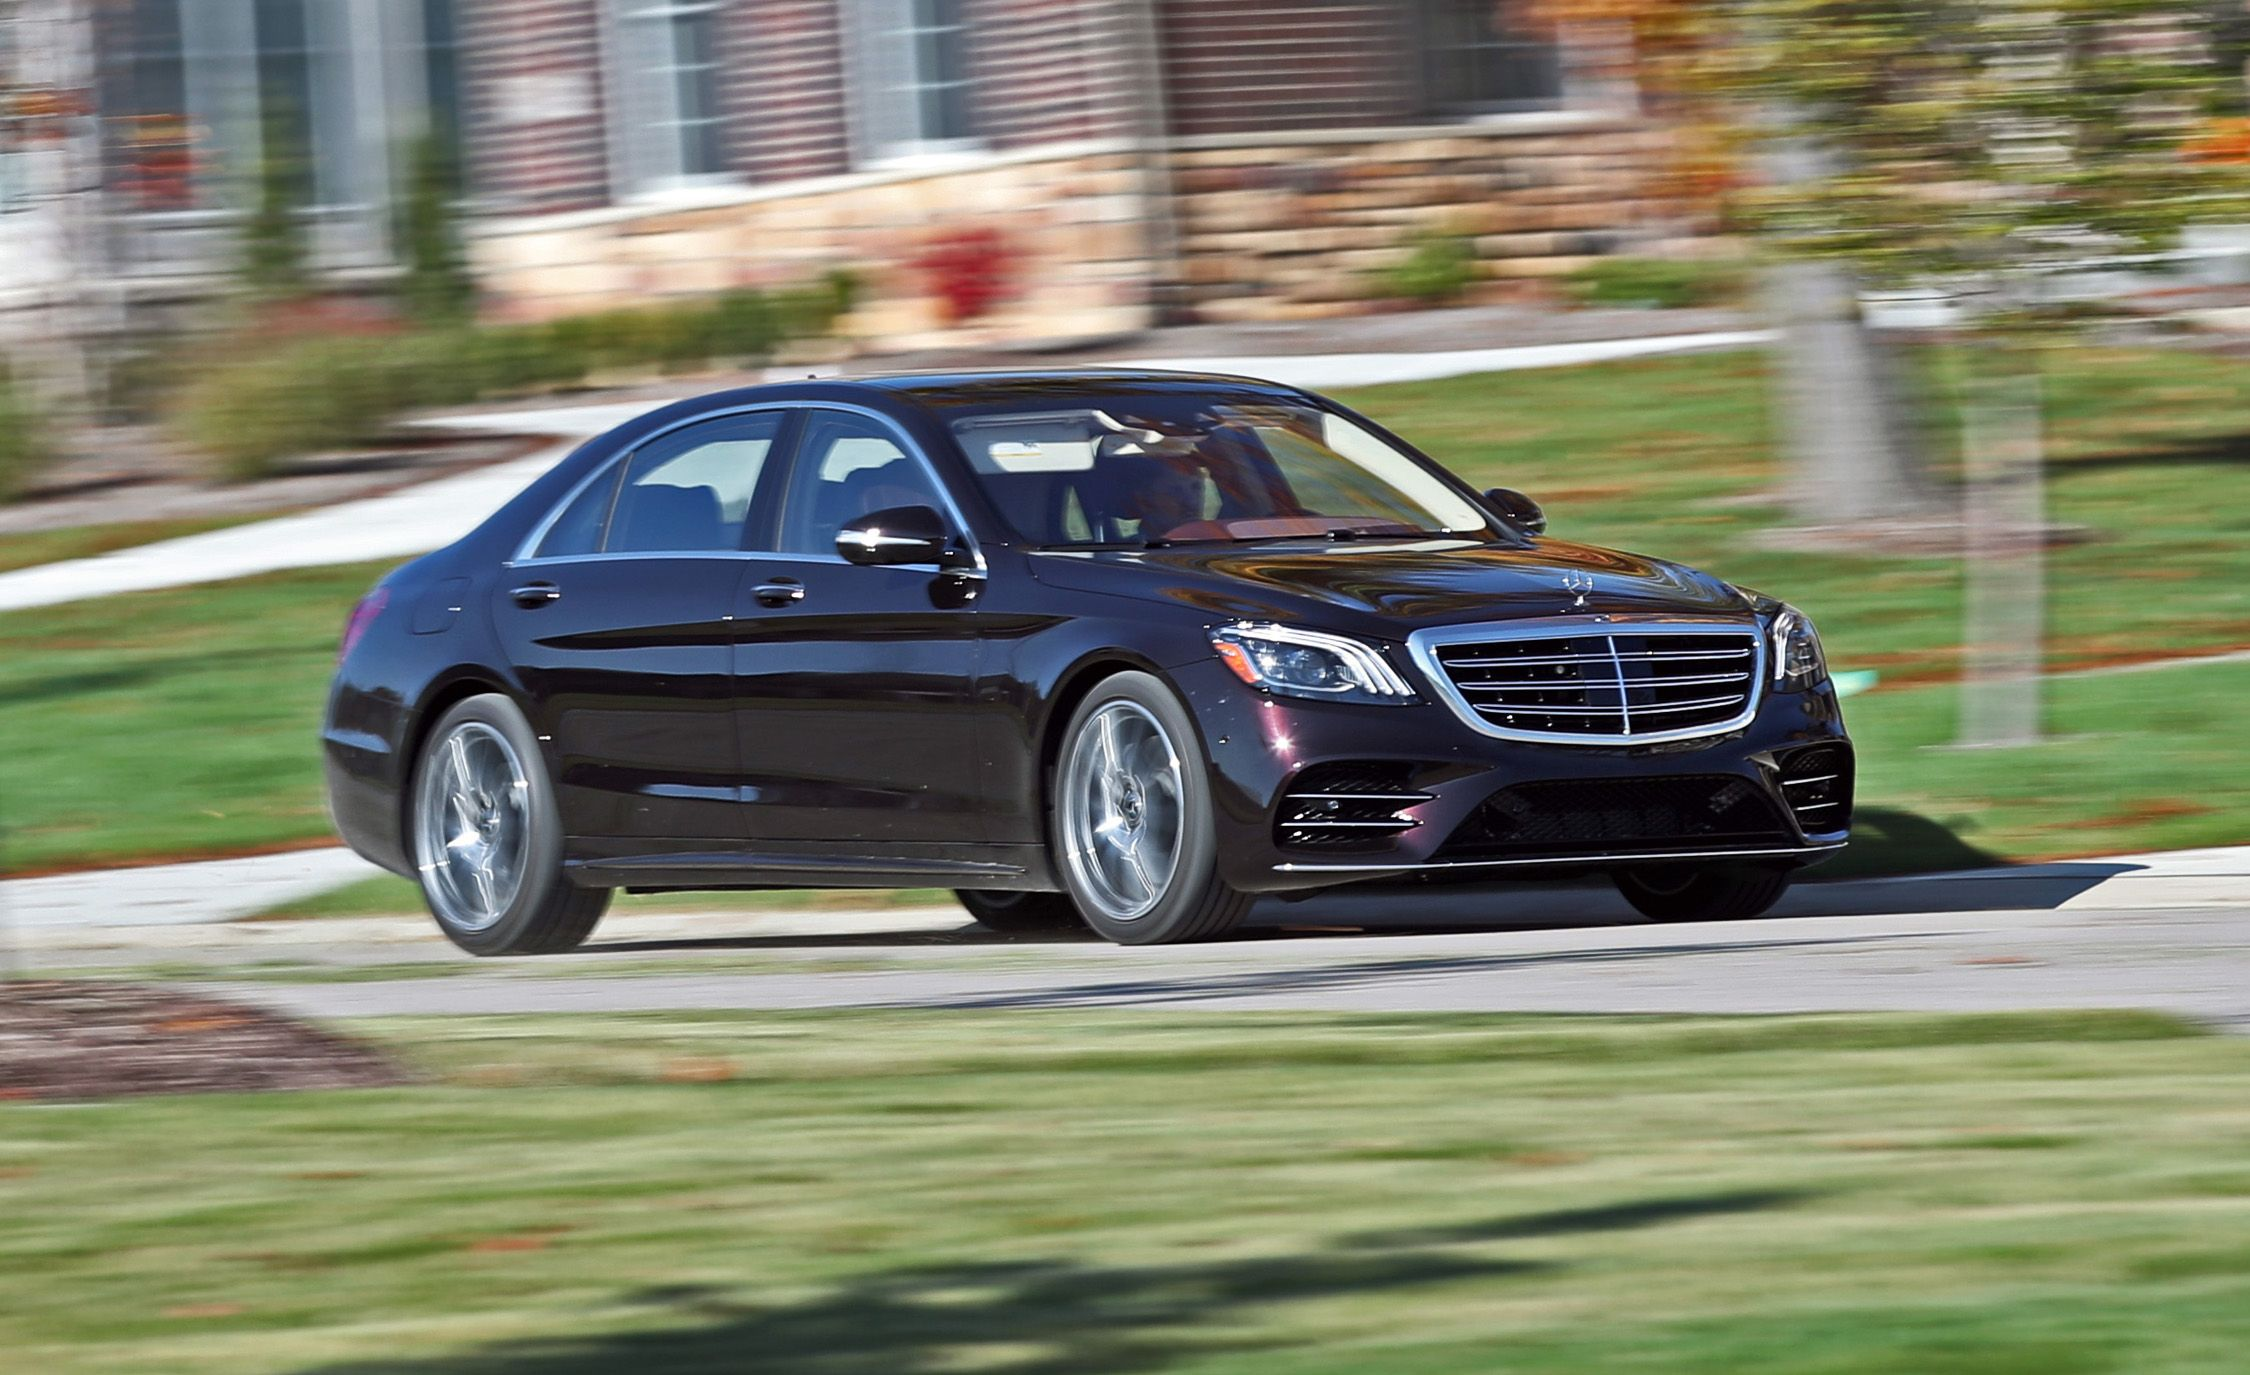 2018 Mercedes Benz S class   In Depth Model Review   Car and Driver